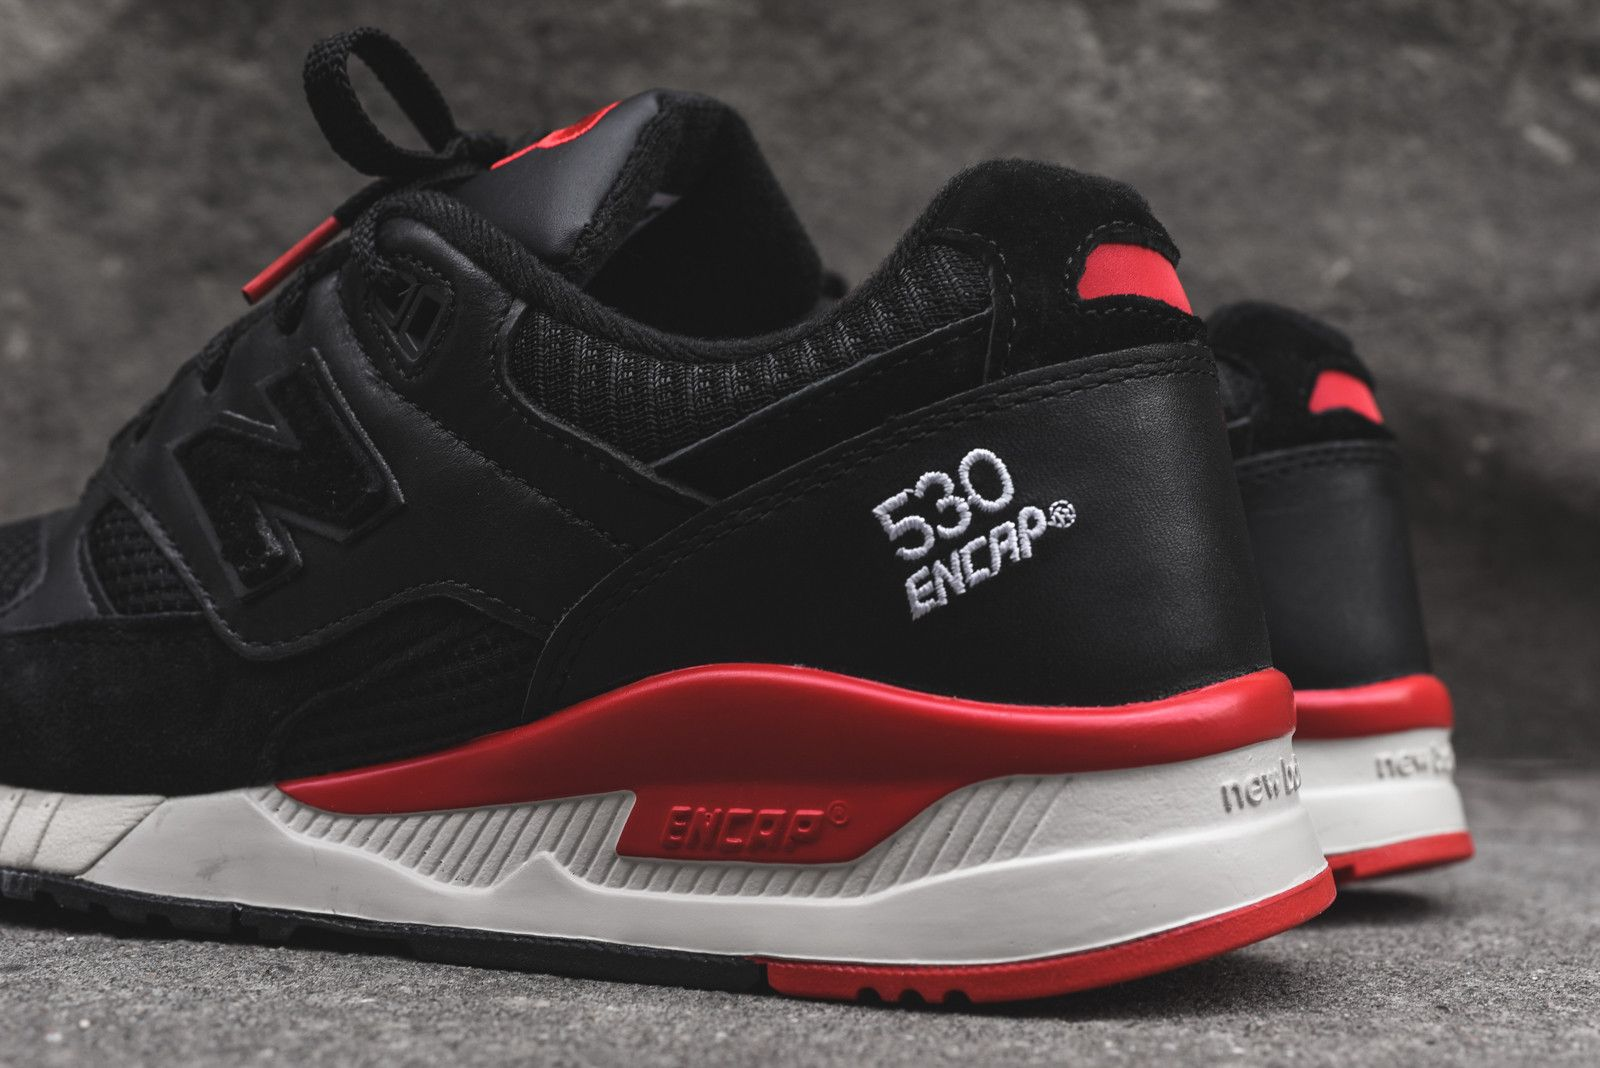 sports shoes 07ea7 98392 New Balance M530 - Black / Red   Things to Wear   Sneakers ...